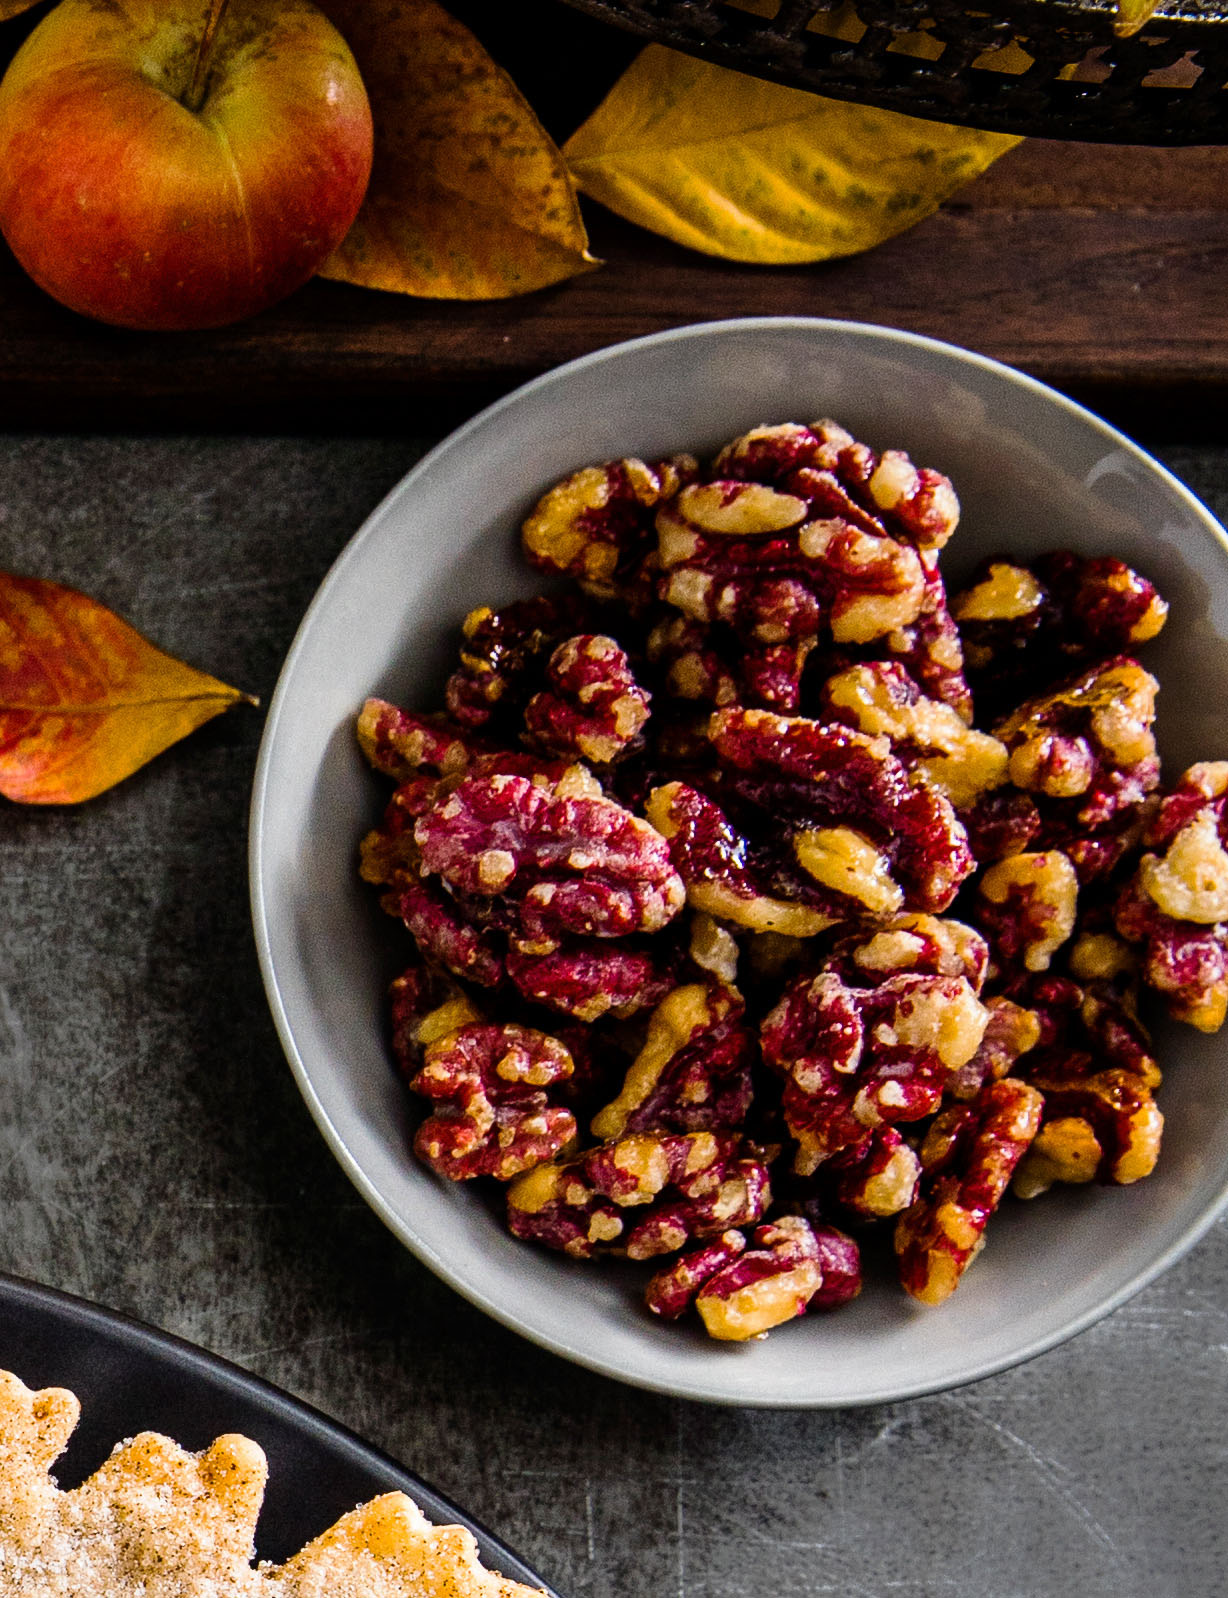 Shiny Candied Nuts